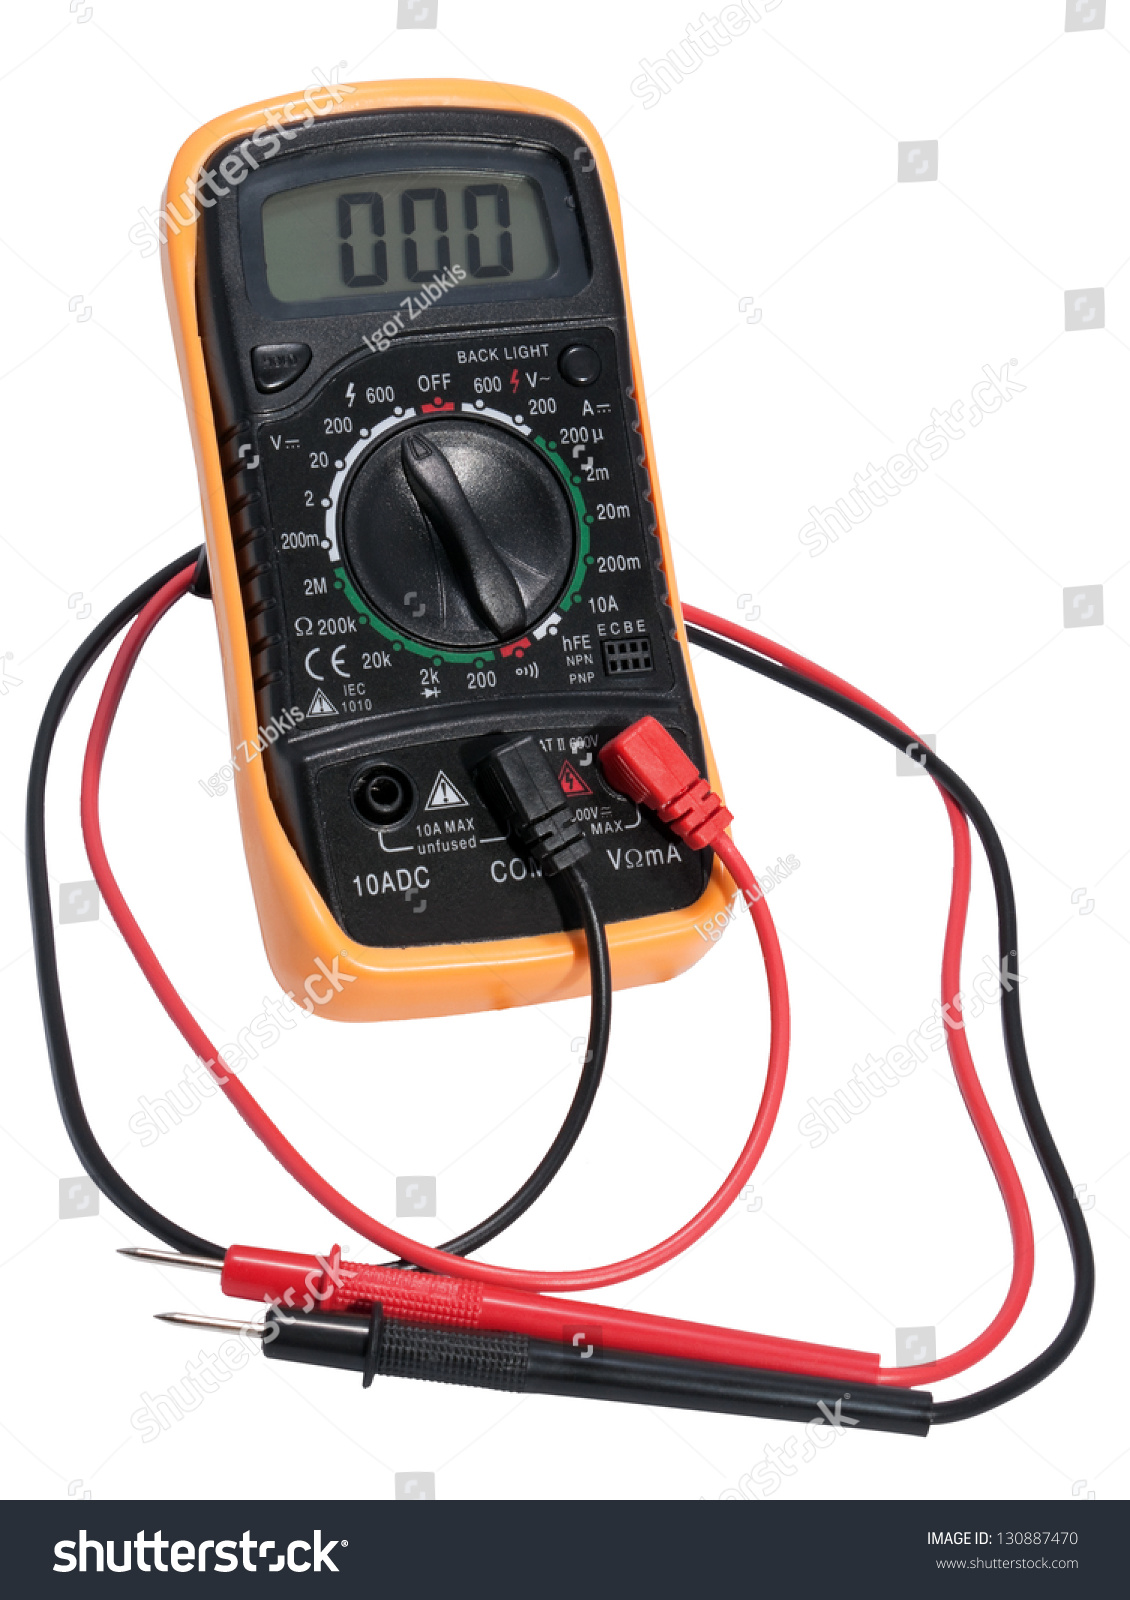 Use Electric Measuring Devices : Electric digital tester device measuring stock